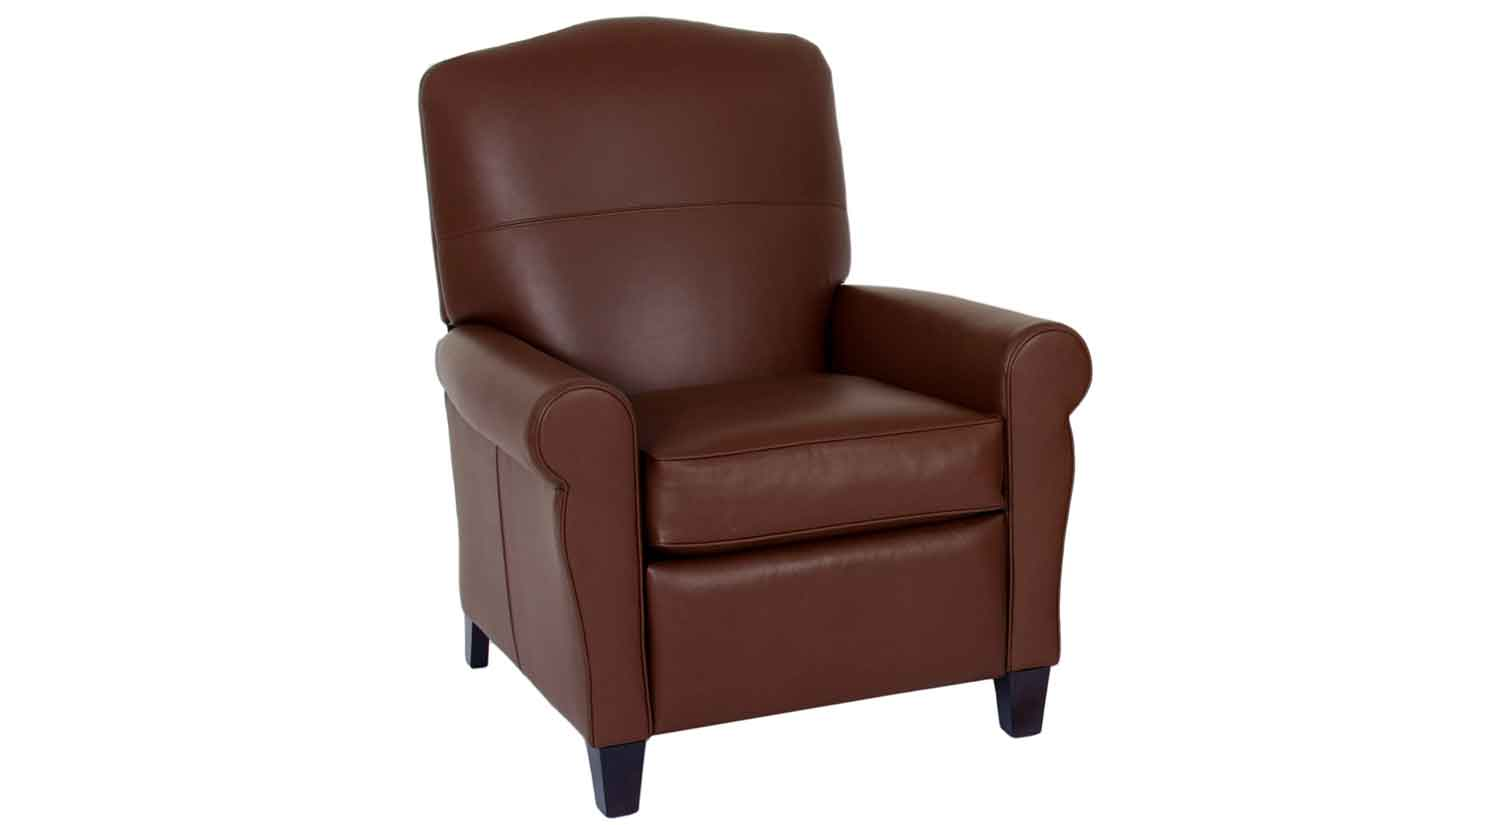 Circle Furniture - Clarksfield Recliner  Recliners MA  Circle ...